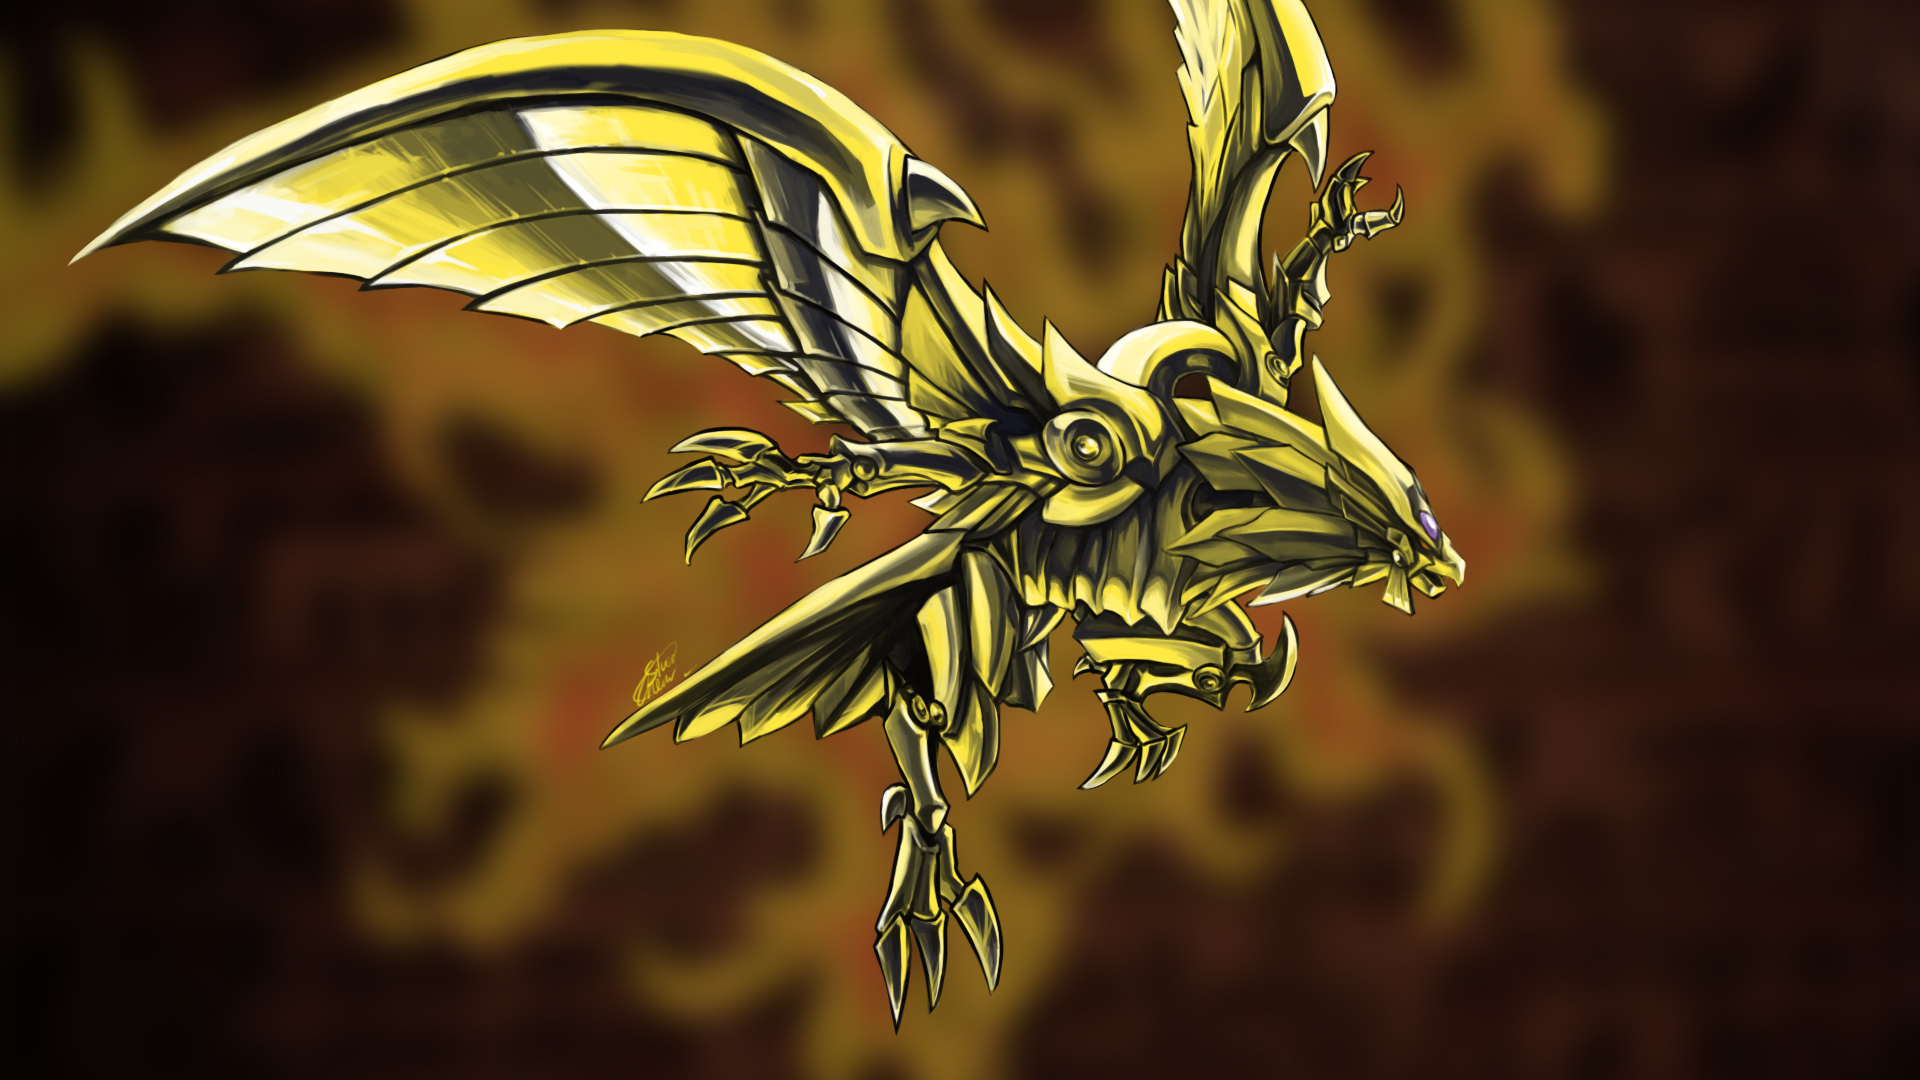 Winged Dragon of ra Background images - Hd Image Galleries ...